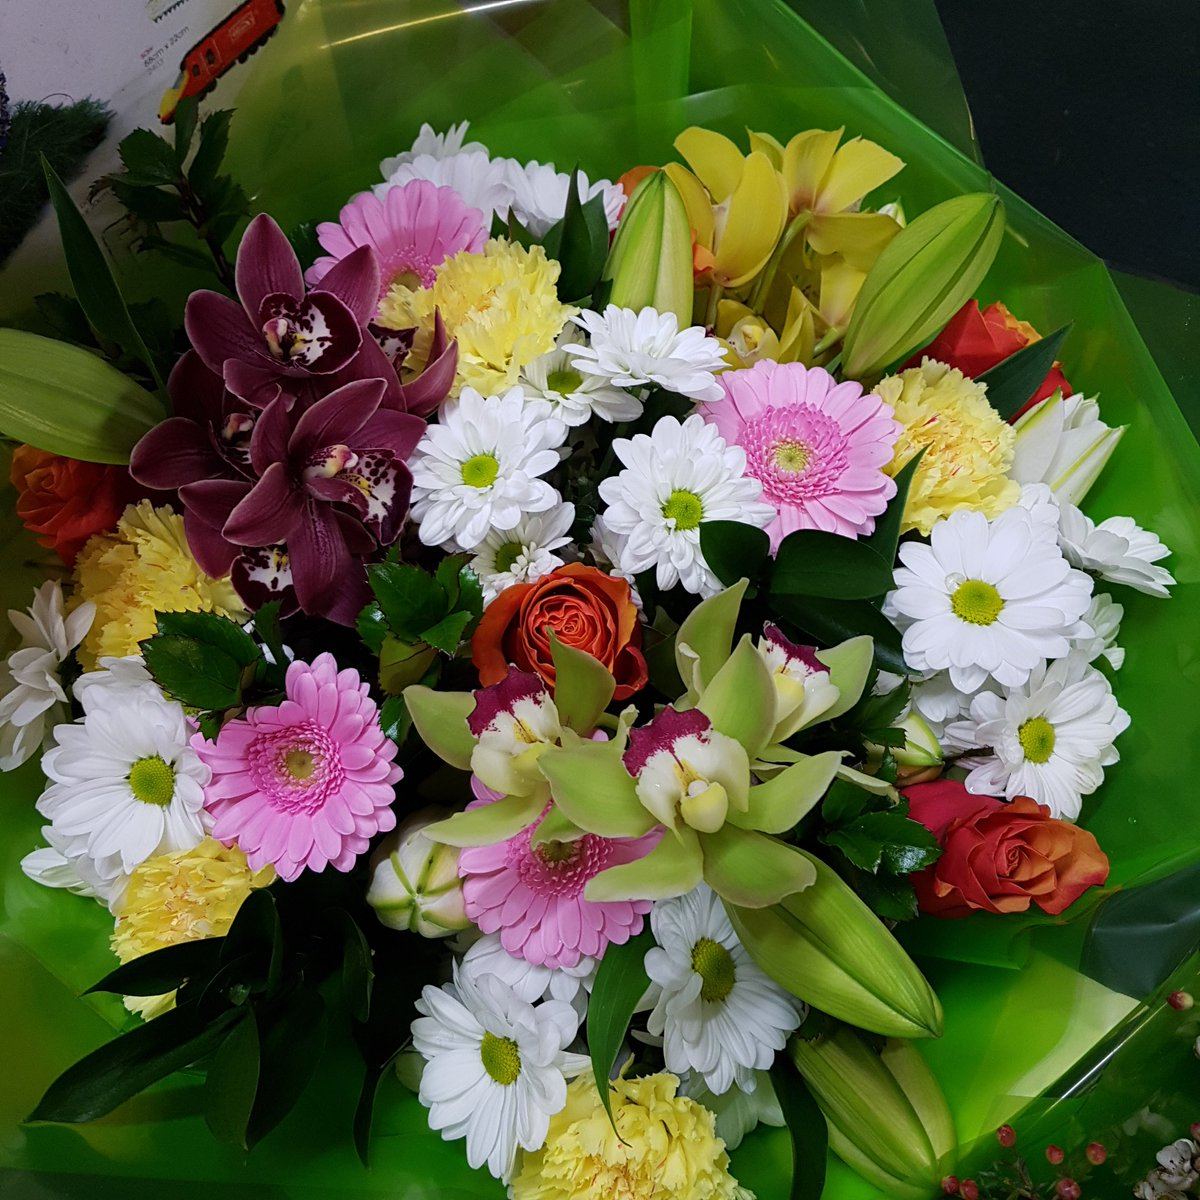 Fantasia Florists On Twitter Tuesday Morning Deliveries Flowers Florist Newcastle Byker Heaton Pink Rose Orchids